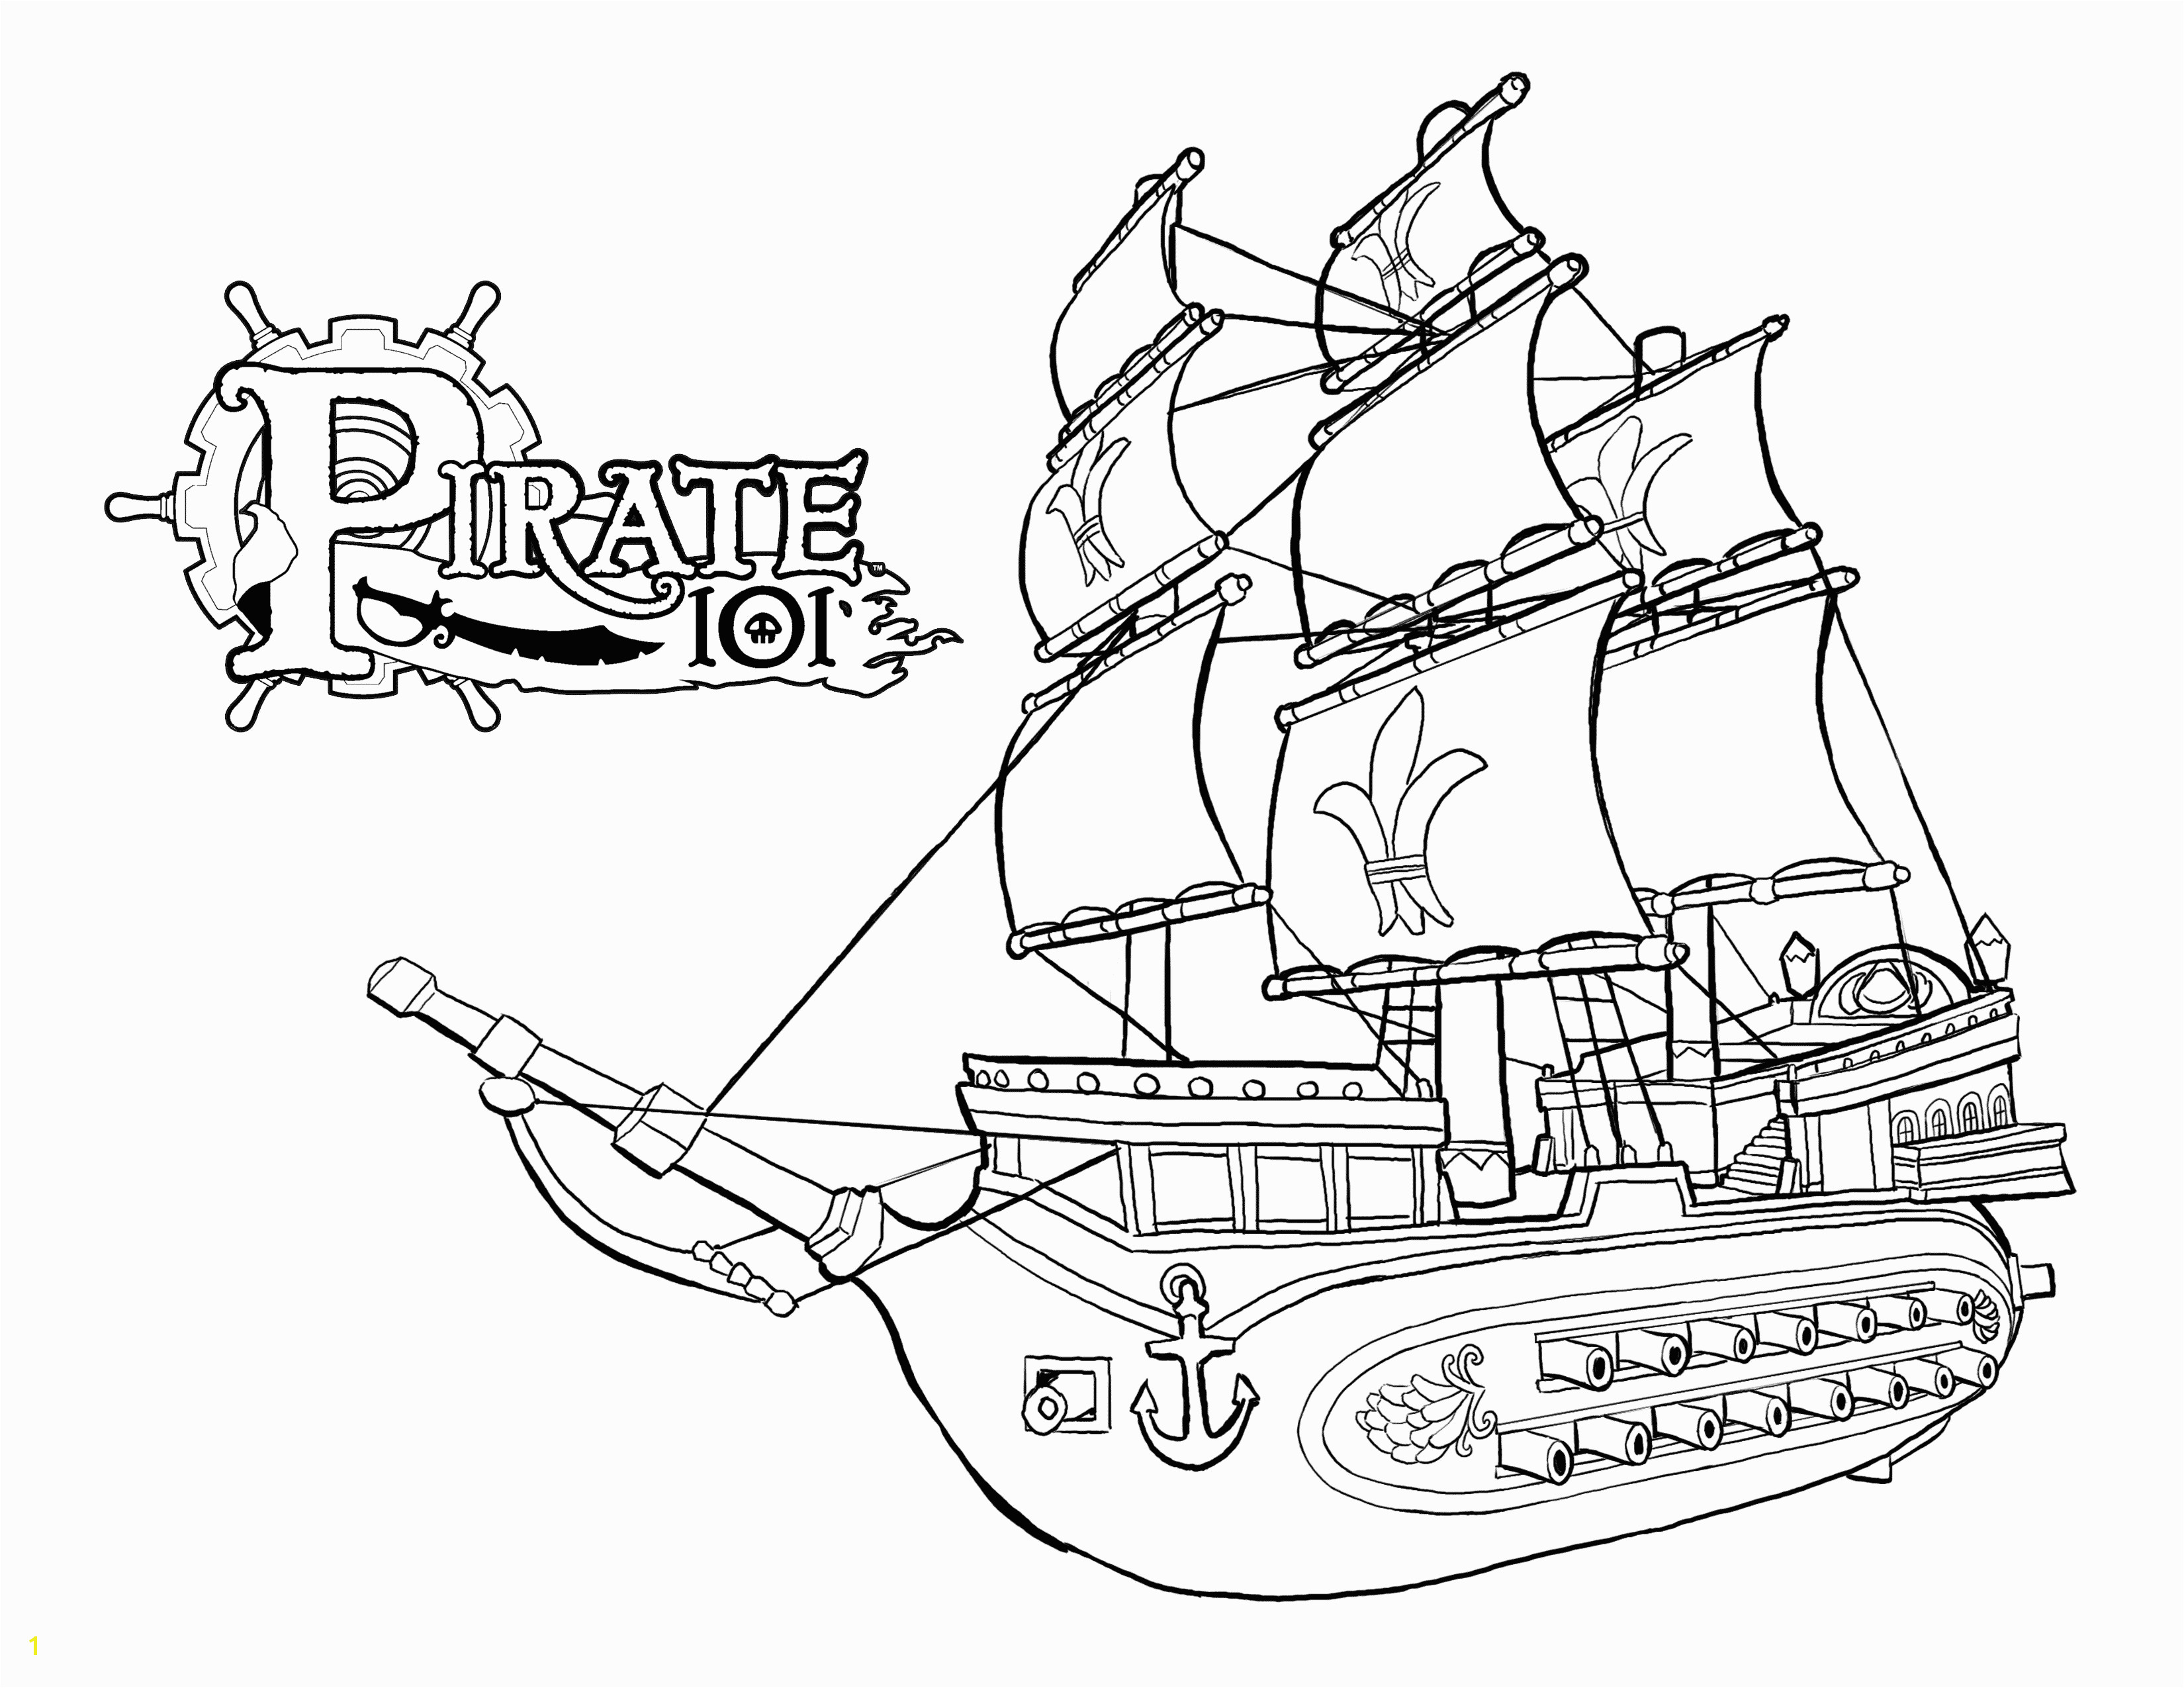 Awesome Ships coloring pages Download 3 r Fun Pirate Clip Art E H Pirates Pinterest